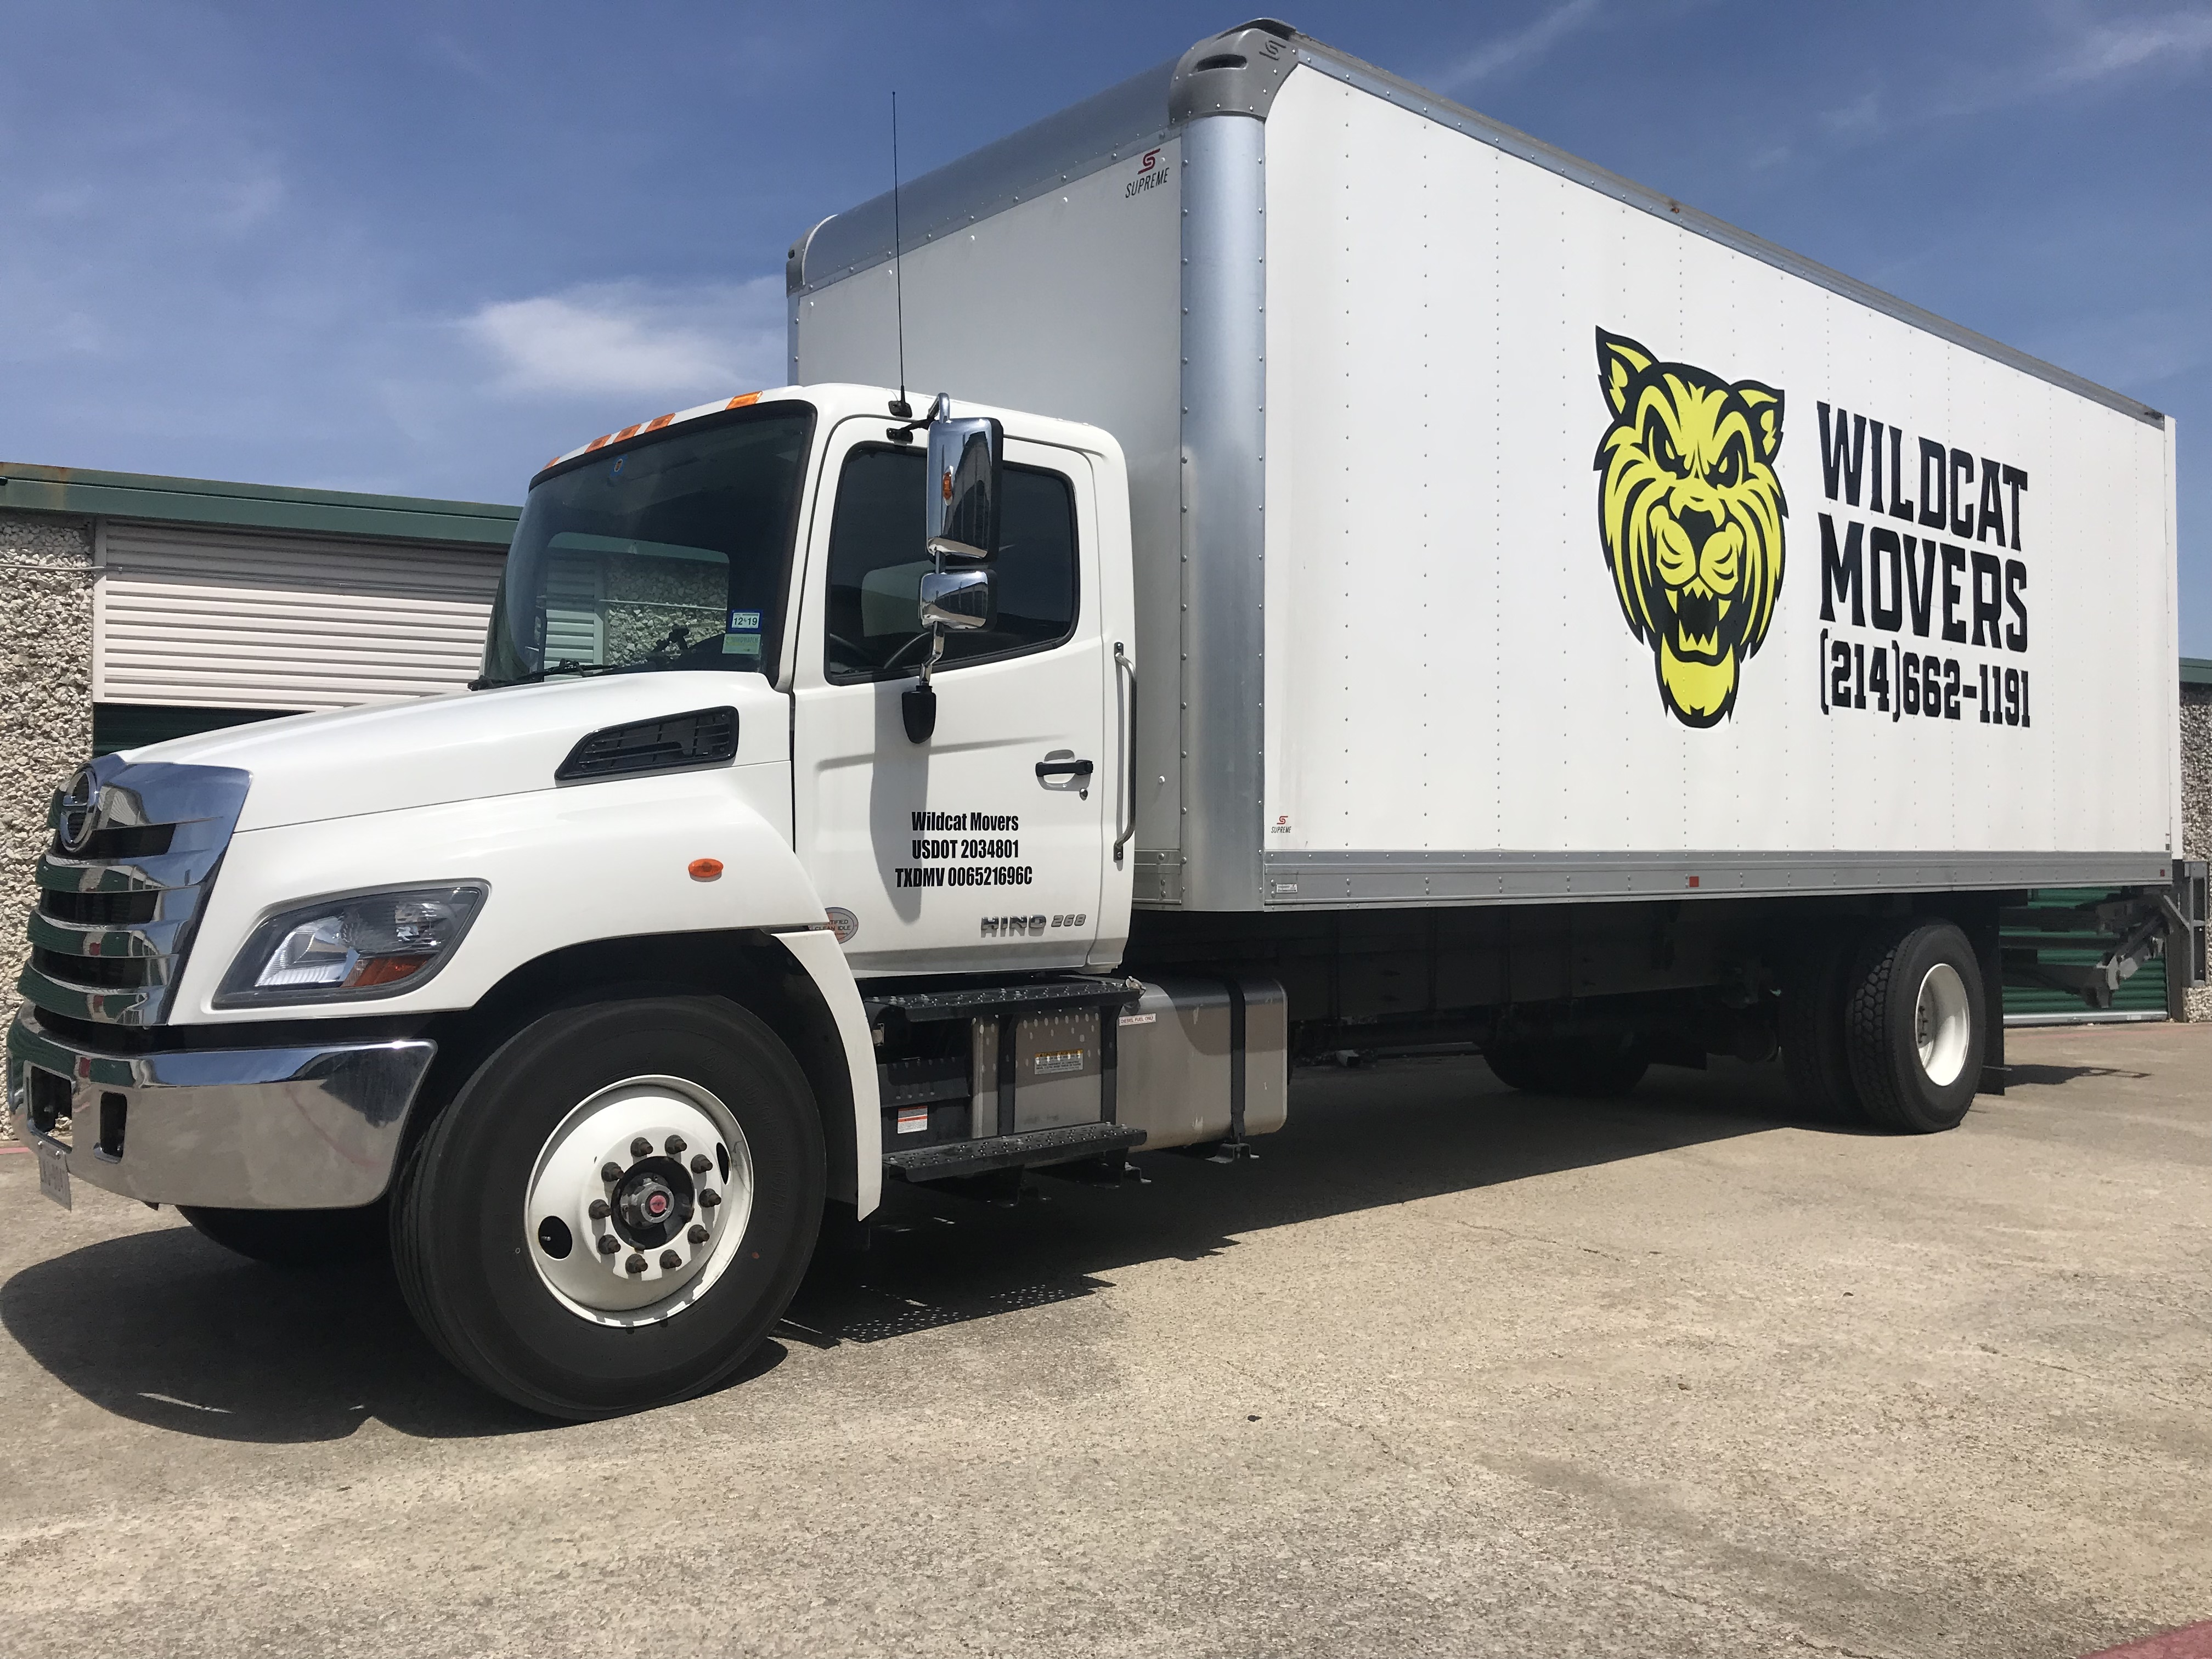 Wildcat Movers Dallas Moving Companies